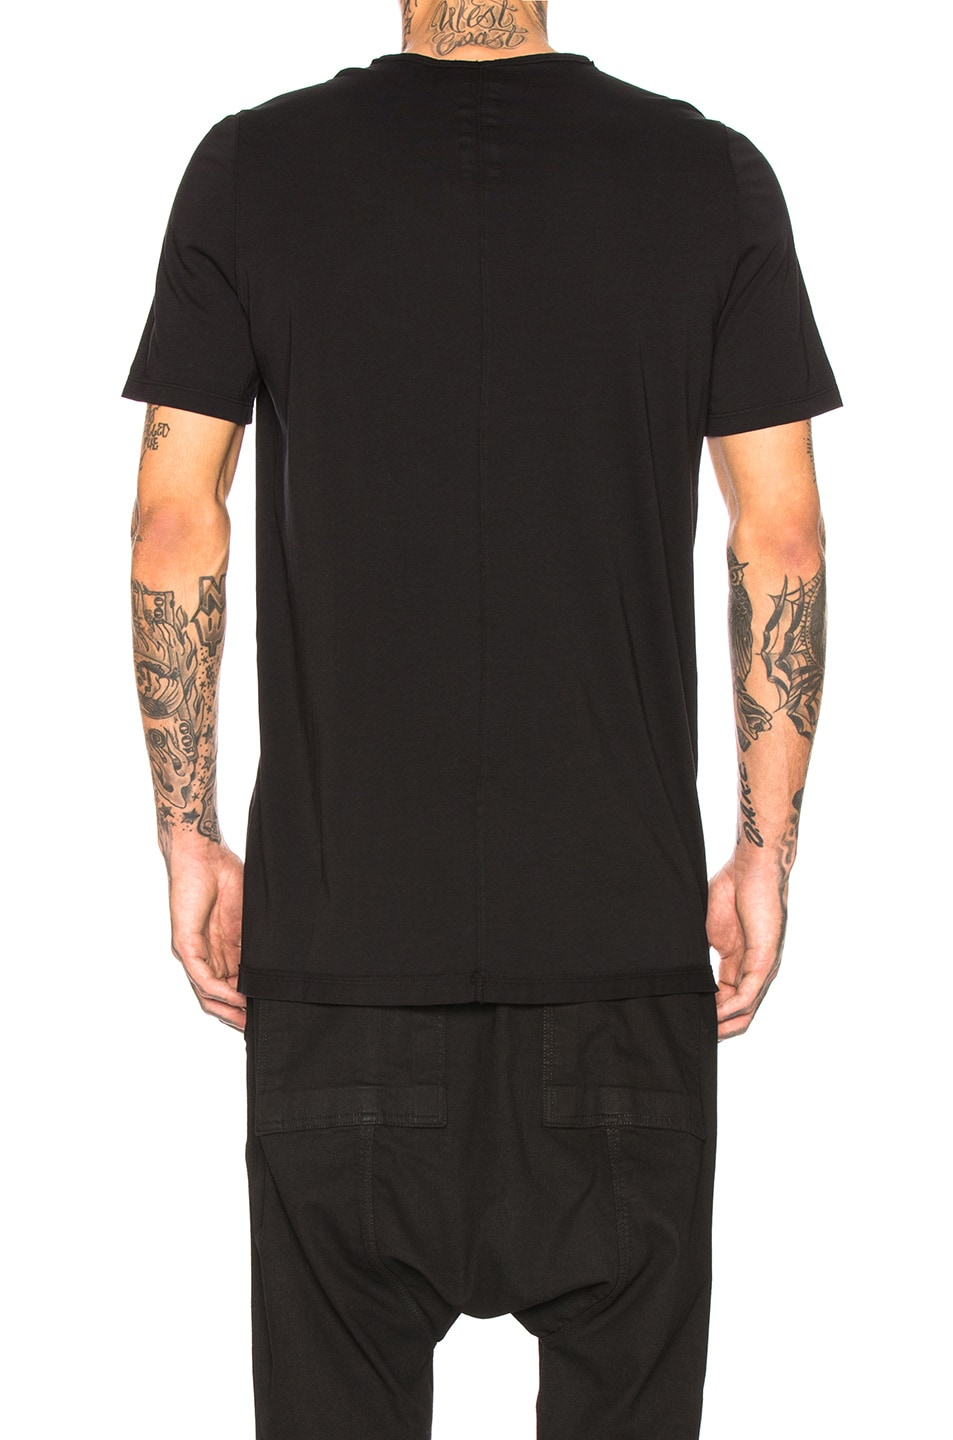 DRKSHDW by Rick Owens Level Tee Black lovely